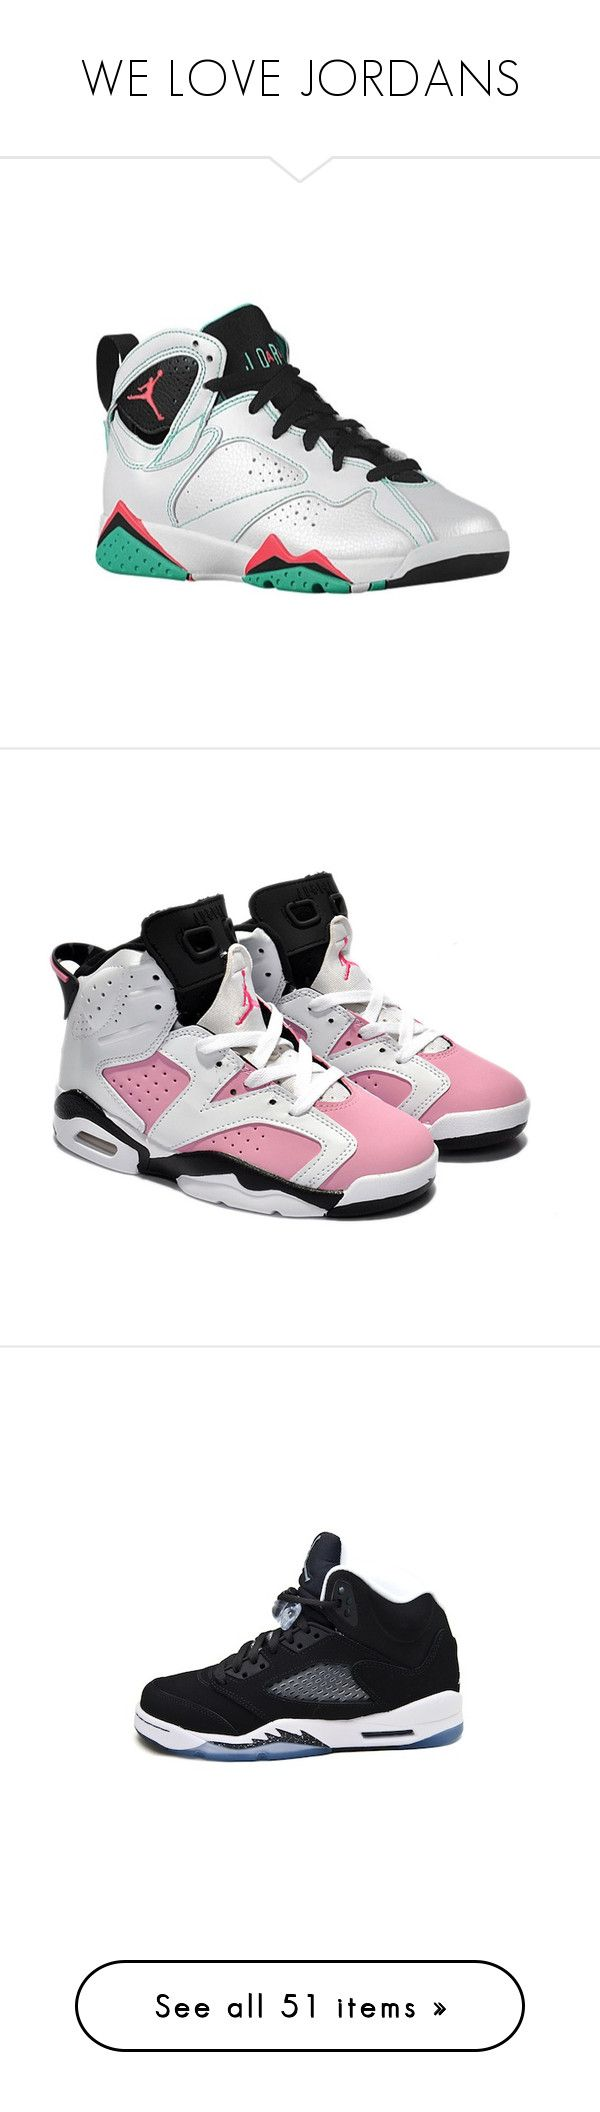 """""""WE LOVE JORDANS"""" by therealistindagame ❤ liked on Polyvore featuring shoes, jordans, nike, sneakers, kids, trainers, black pink shoes, pink high tops, blue shoes and blue high top shoes"""